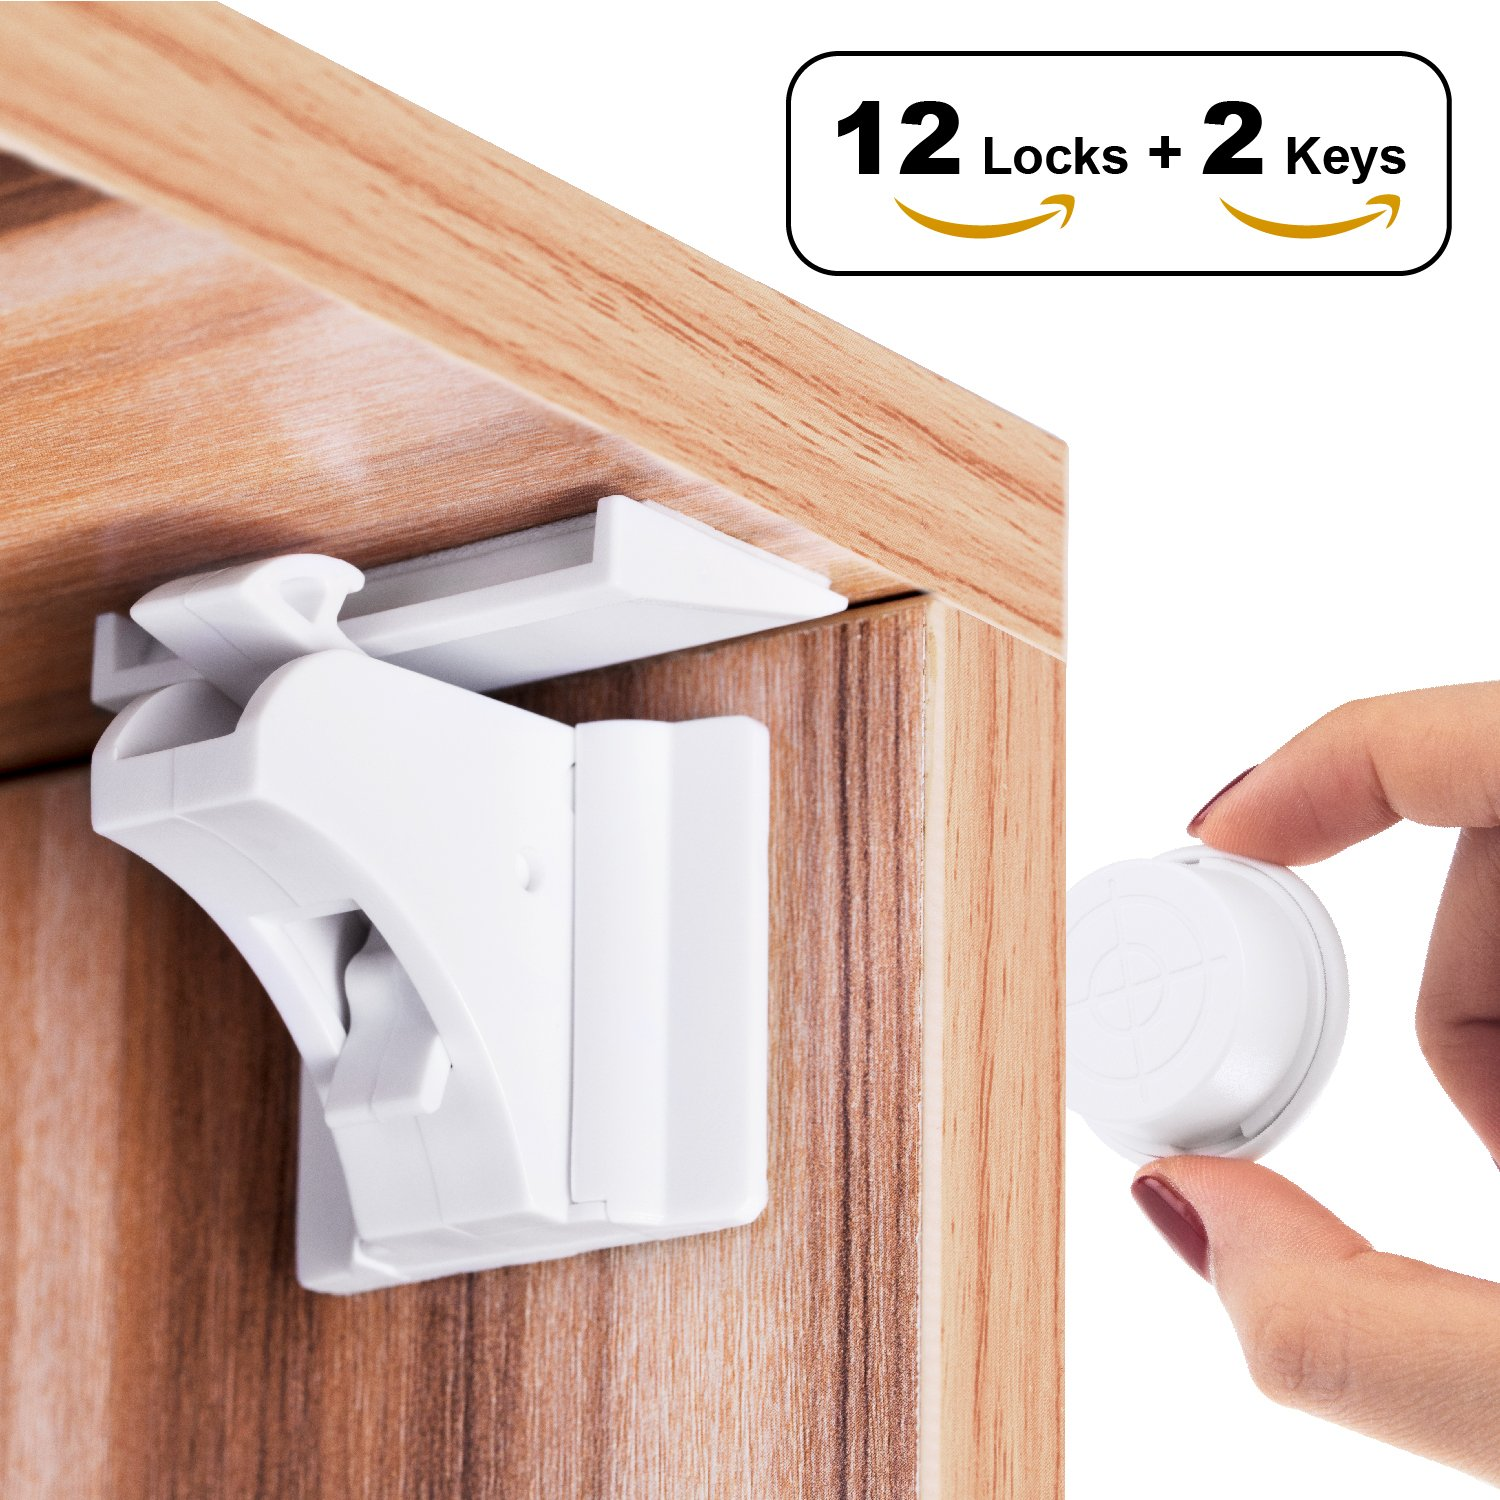 Magnetic Cabinet Locks Child Safety Locks, 12Locks+2Keys Drawer Locks for Baby Proofing Cabinets - No Need Tools Drilling Measuring